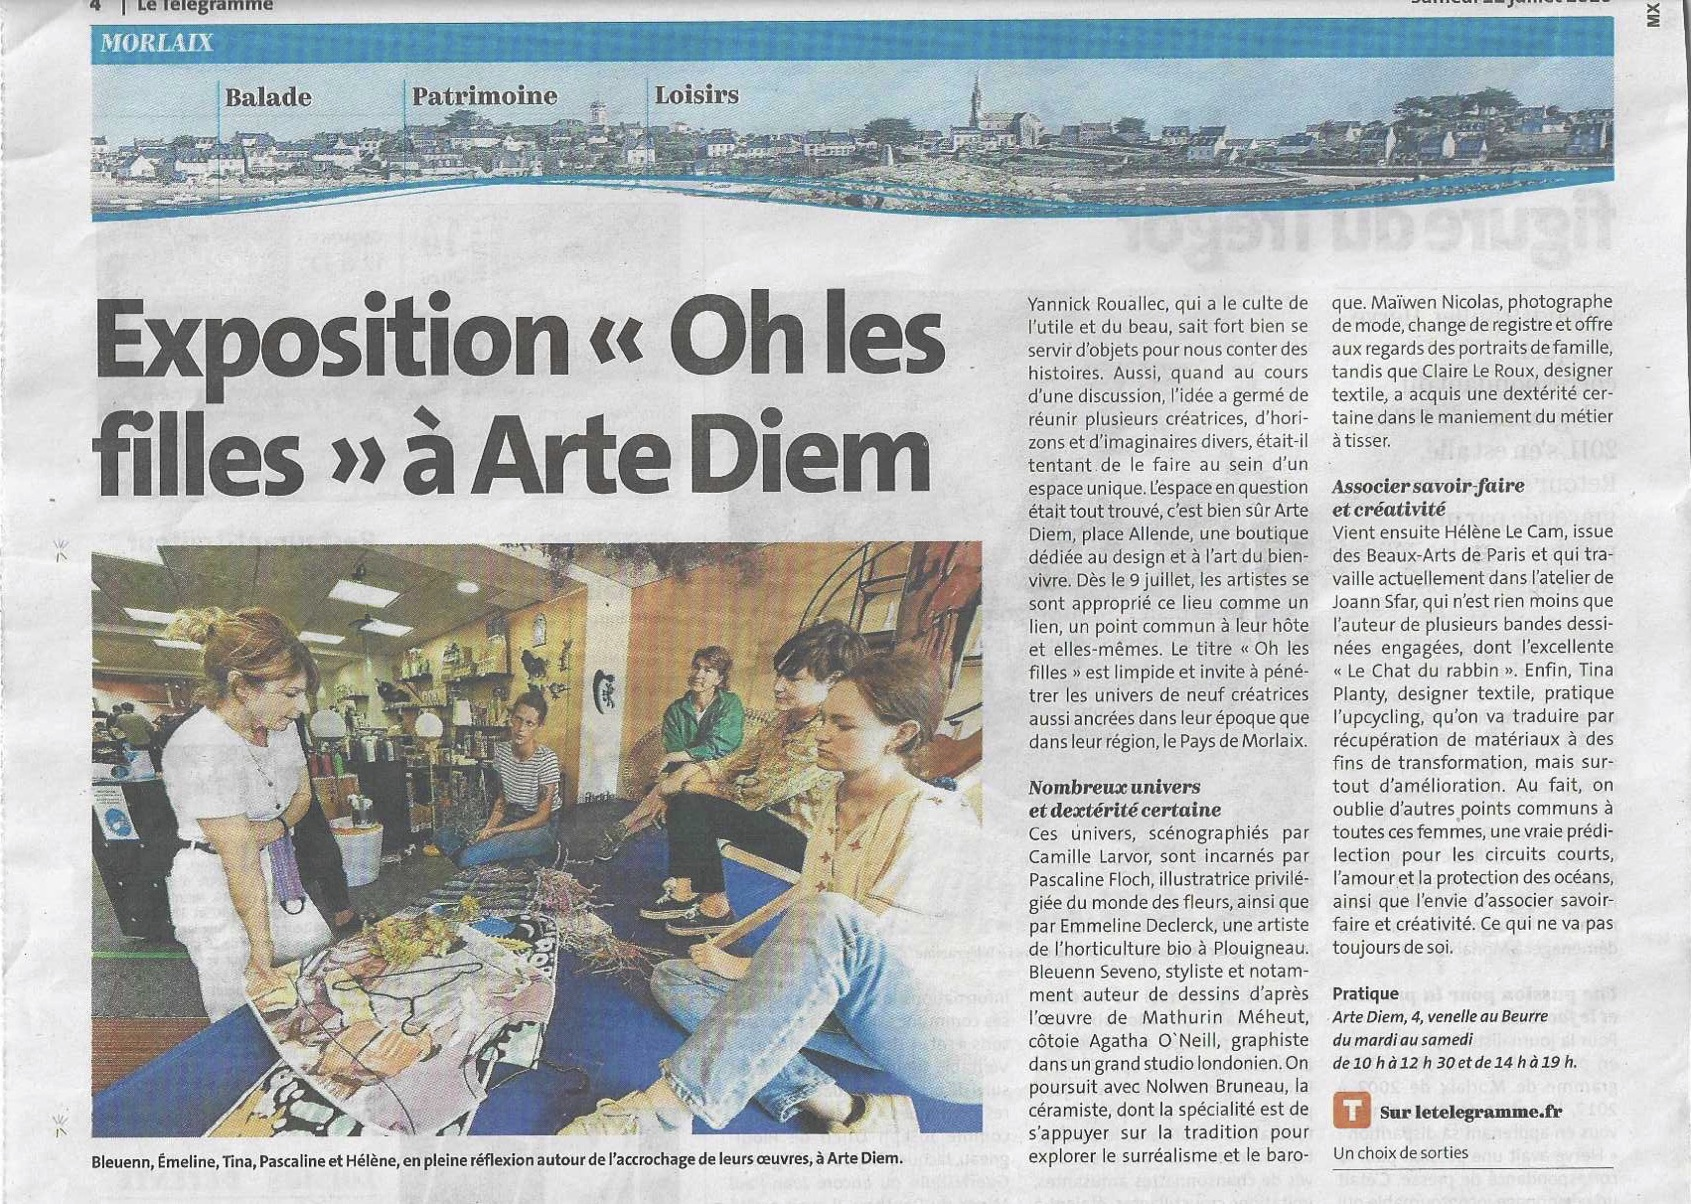 Collaboration KER MER @ ARTE DIEM